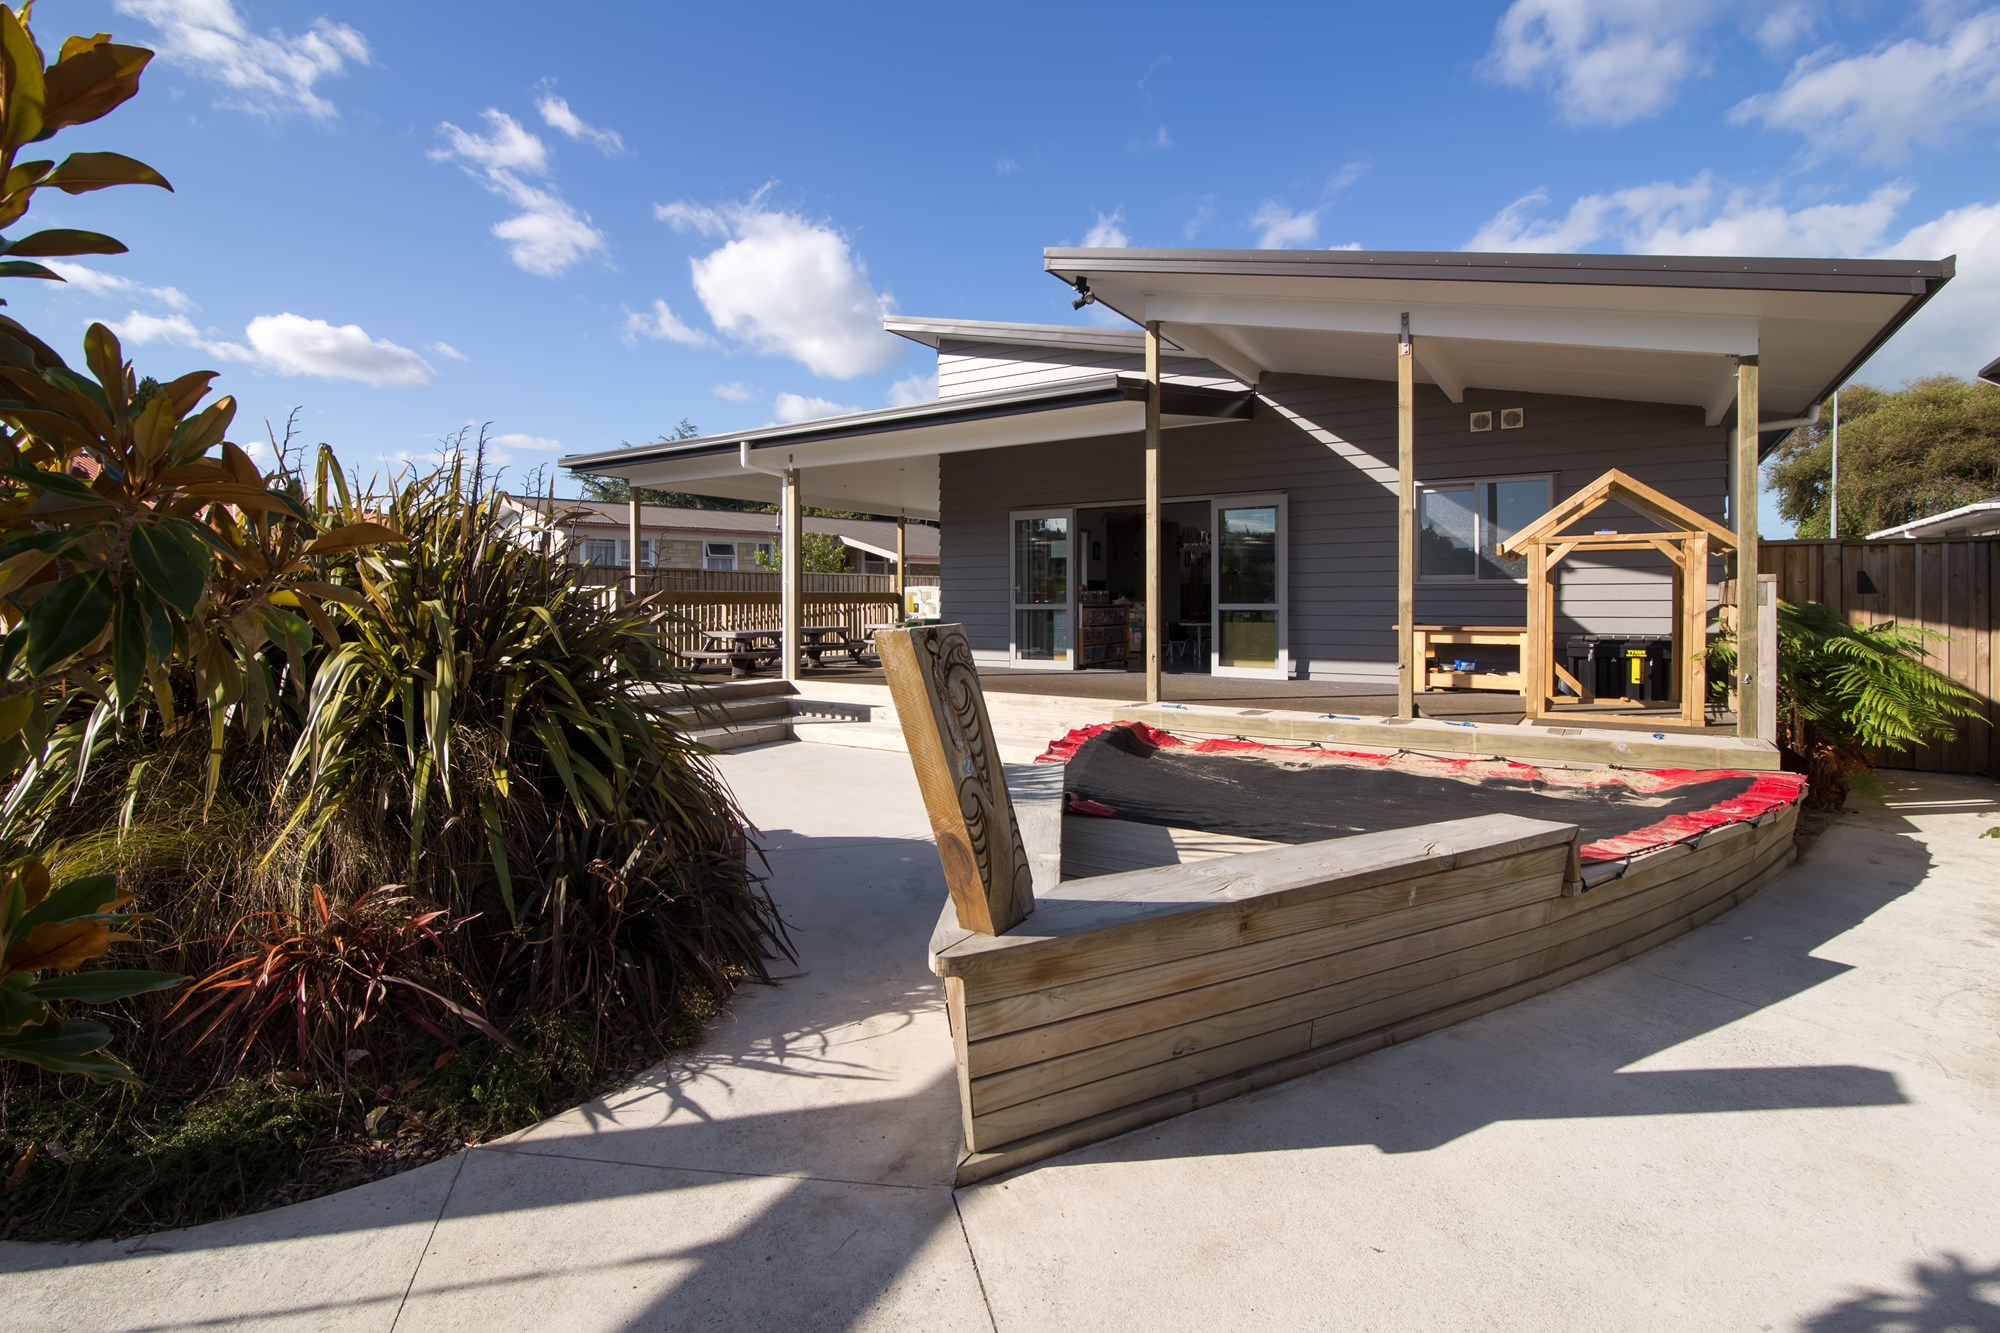 Little People Childcare - Glenfield - Chartwell Ave - Glenfield (3)